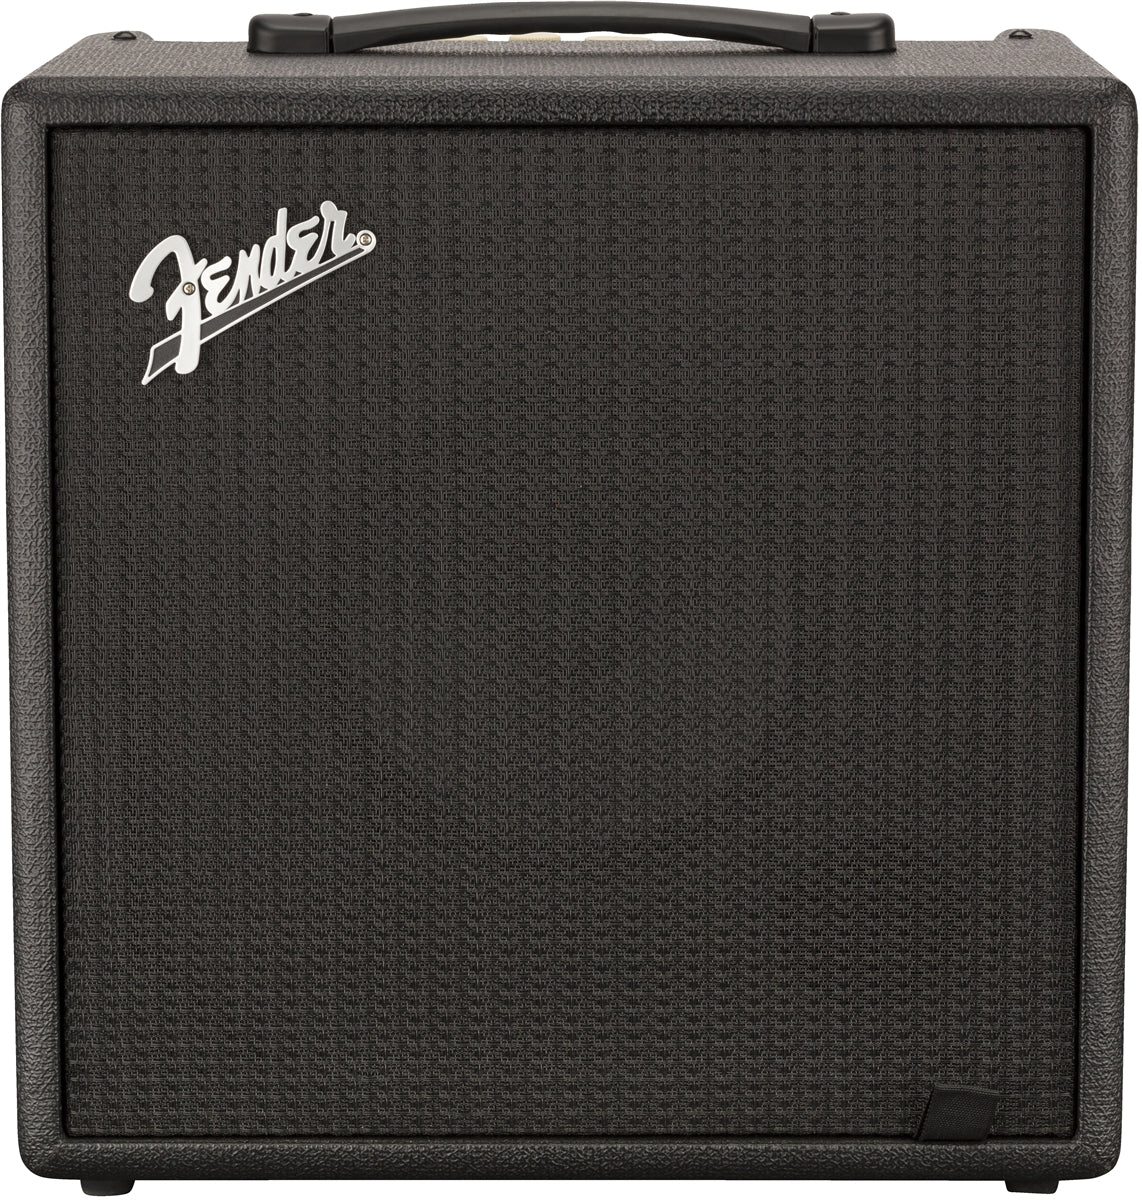 Fender Rumble LT 25